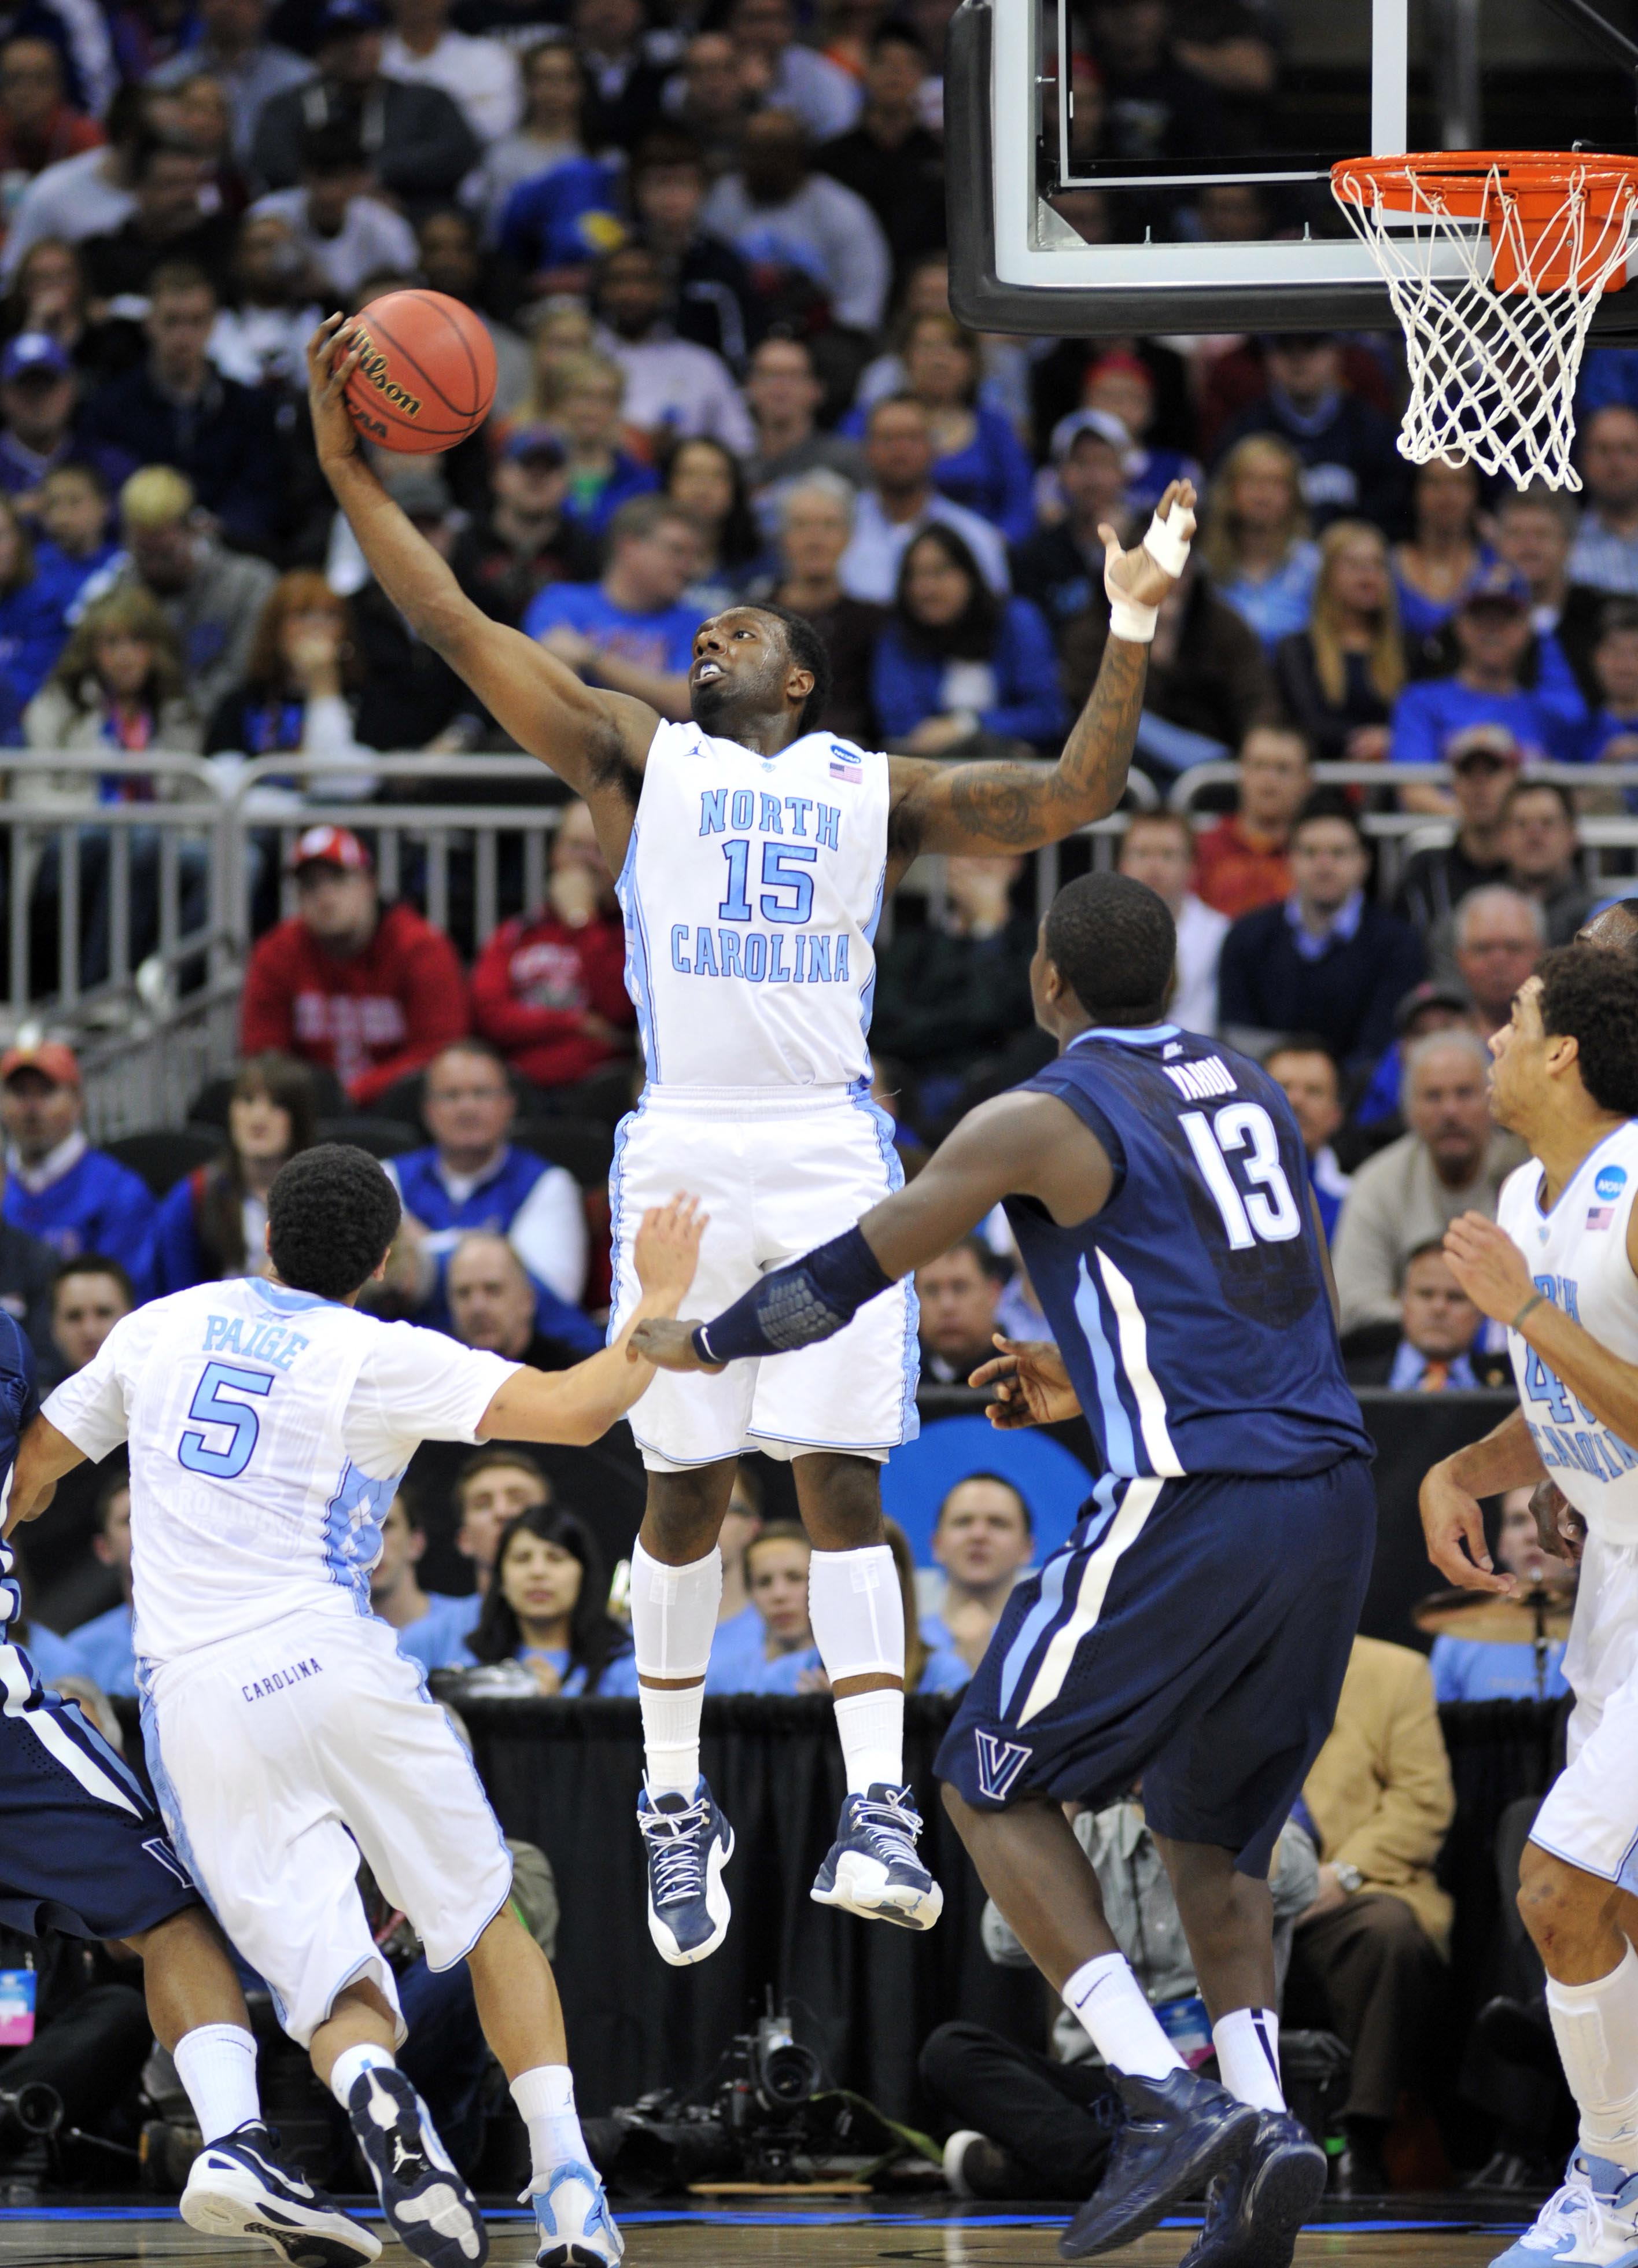 P.J. Hairston goes up for a rebound against Villanova. (USA Today)